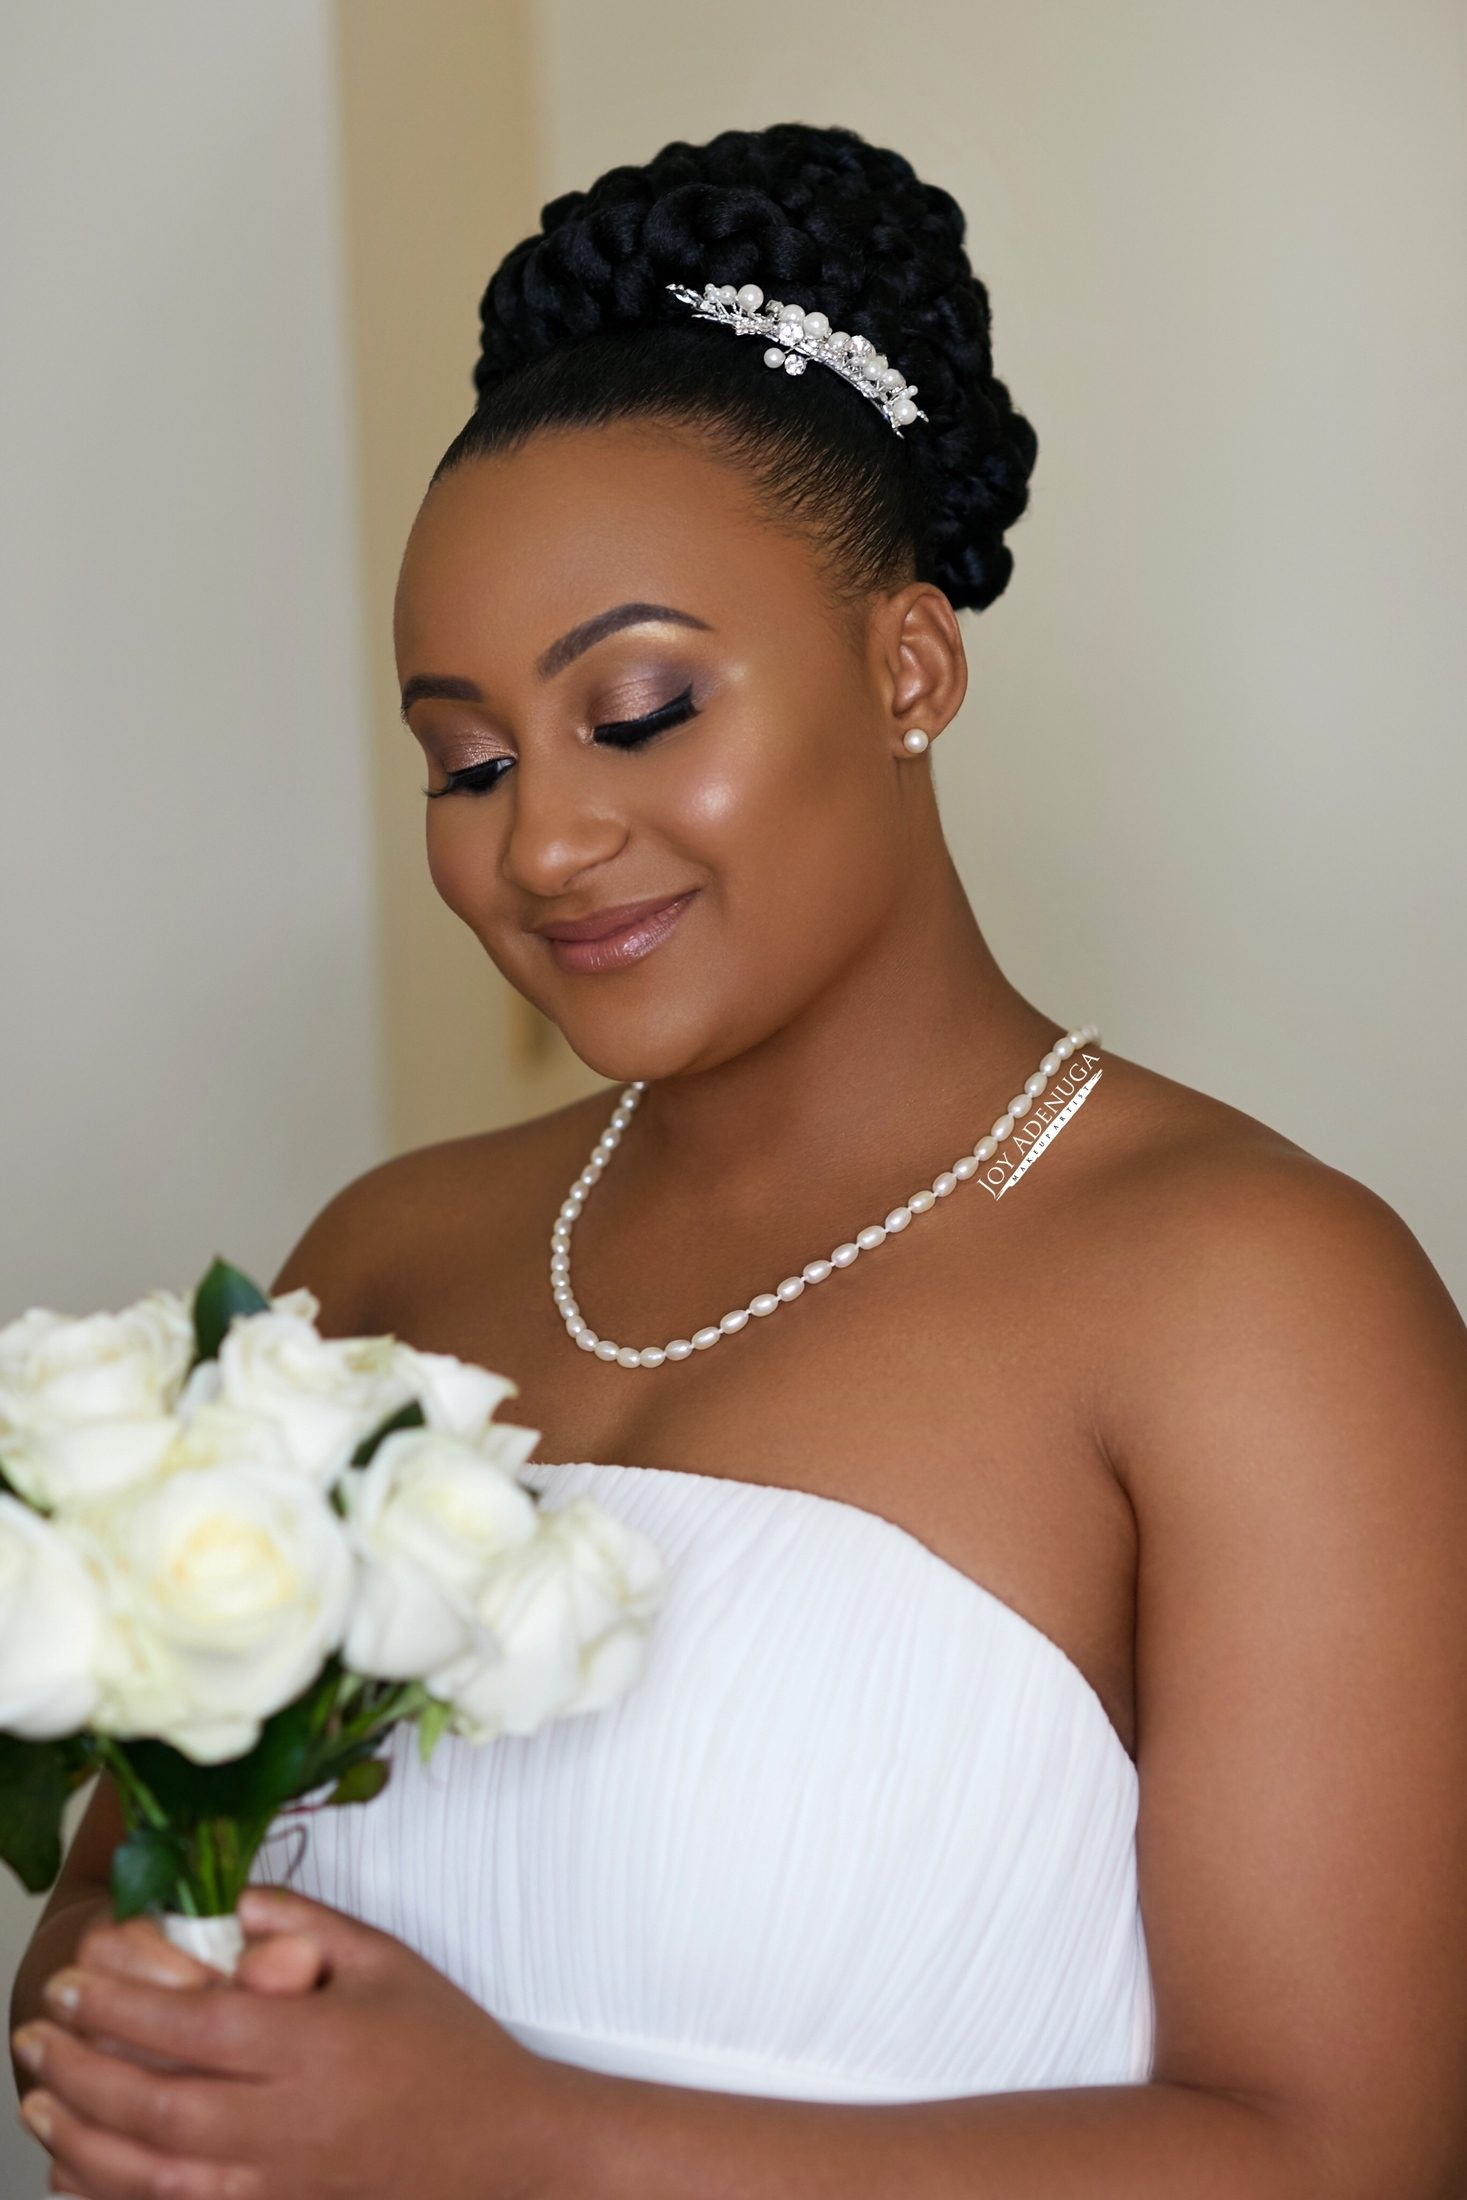 Chantelle's Wedding, Jamaican Bride, Jamaican wedding, joy adenuga, black bride, black bridal blog london, london black makeup artist, london makeup artist for black skin, black bridal makeup artist london, makeup artist for black skin, nigerian makeup artist london, makeup artist for women of colour